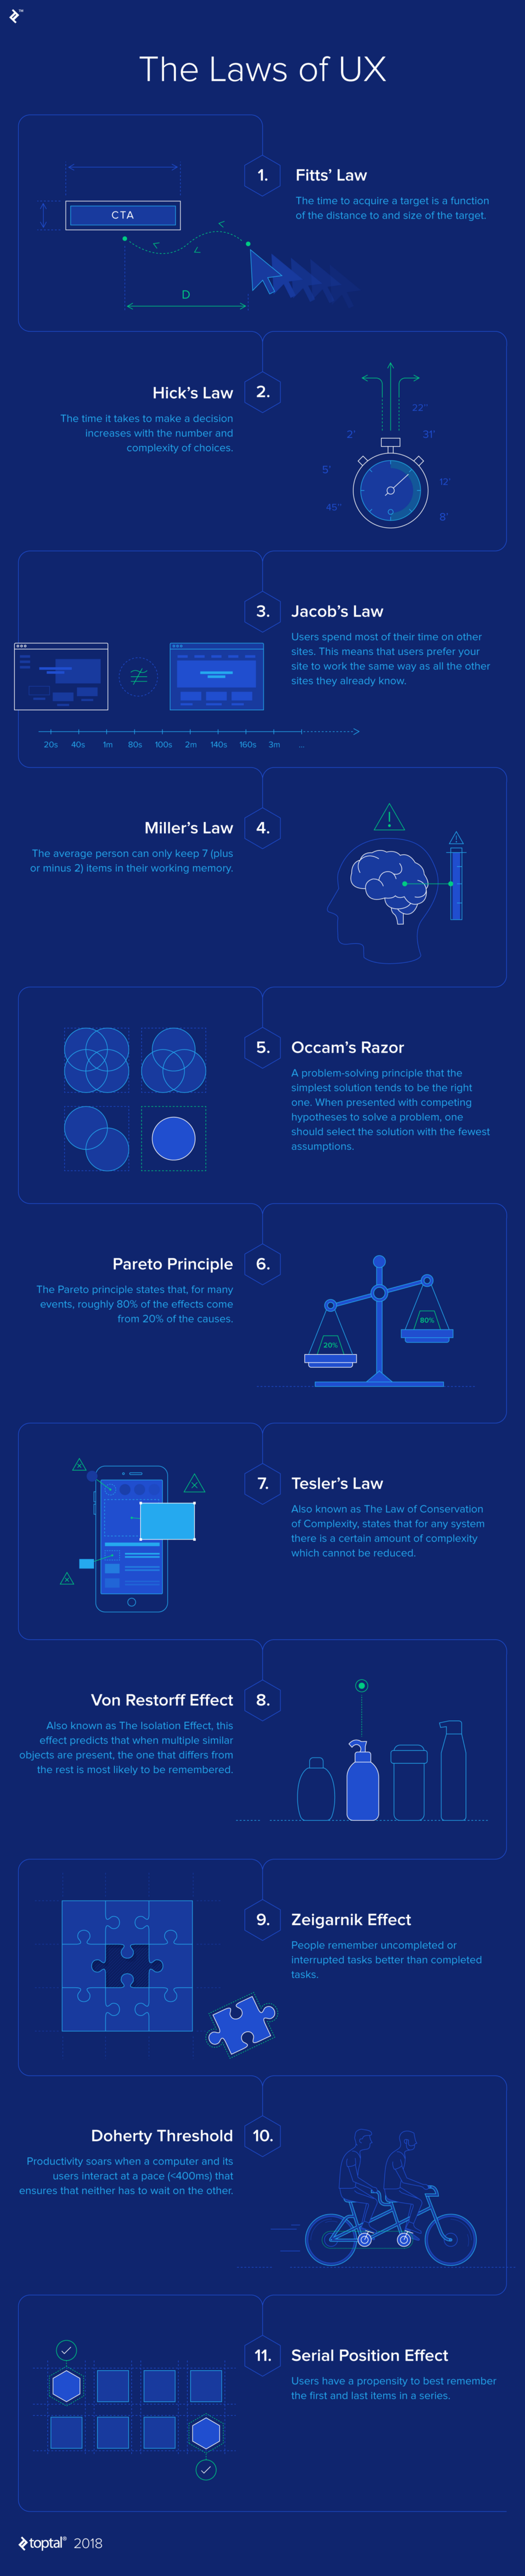 Laws of UX  Infographic